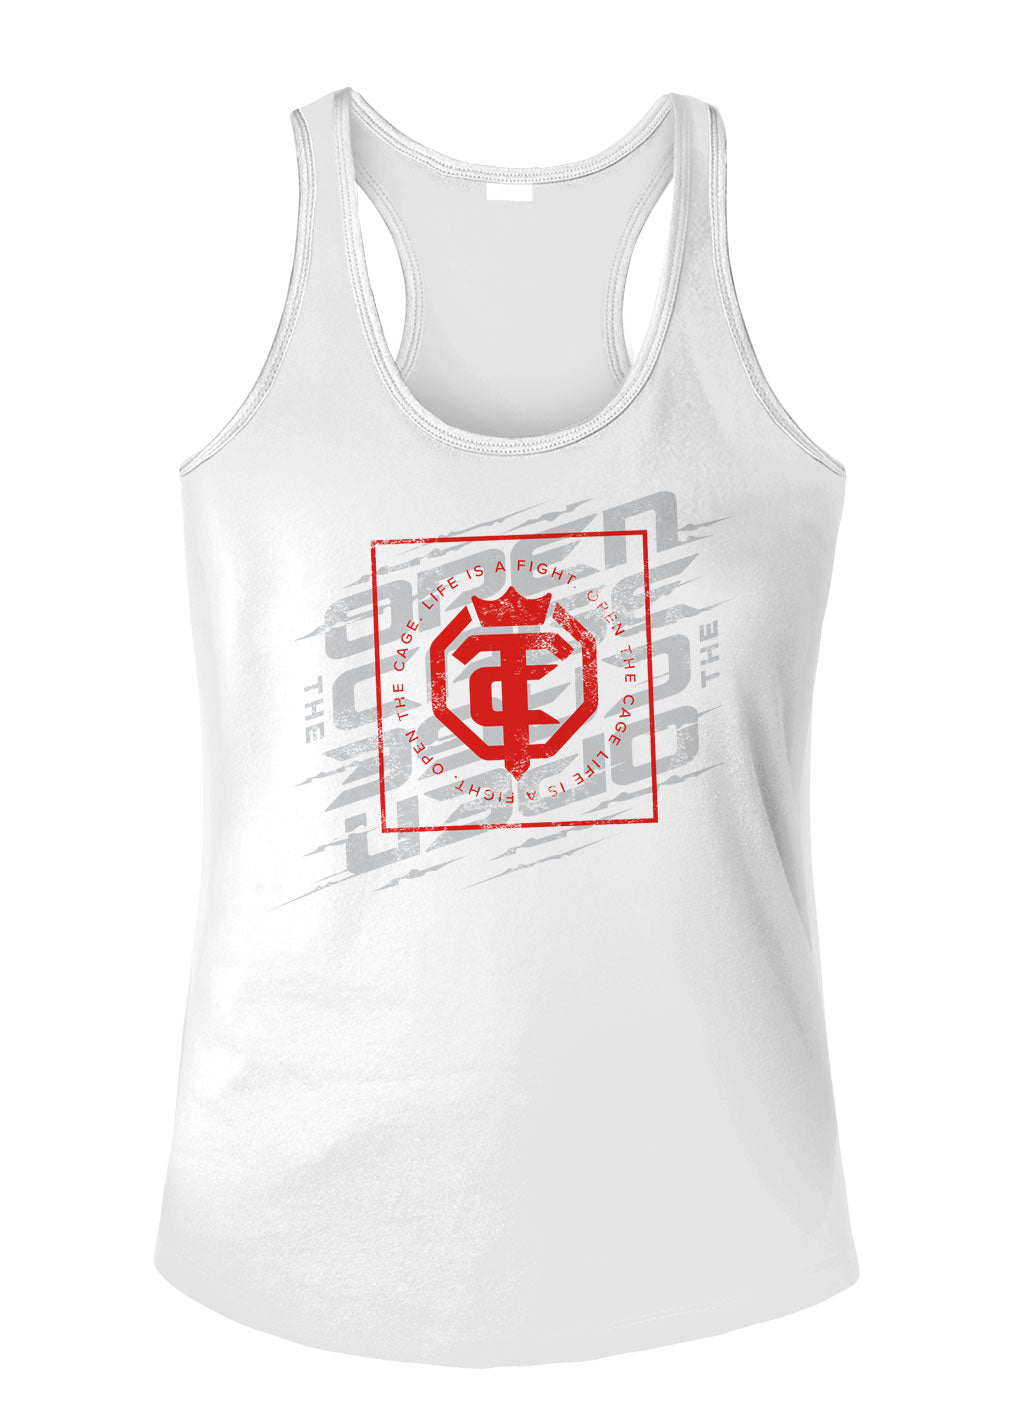 Open The Cage - Defender - White - Women's Racer Back Tank